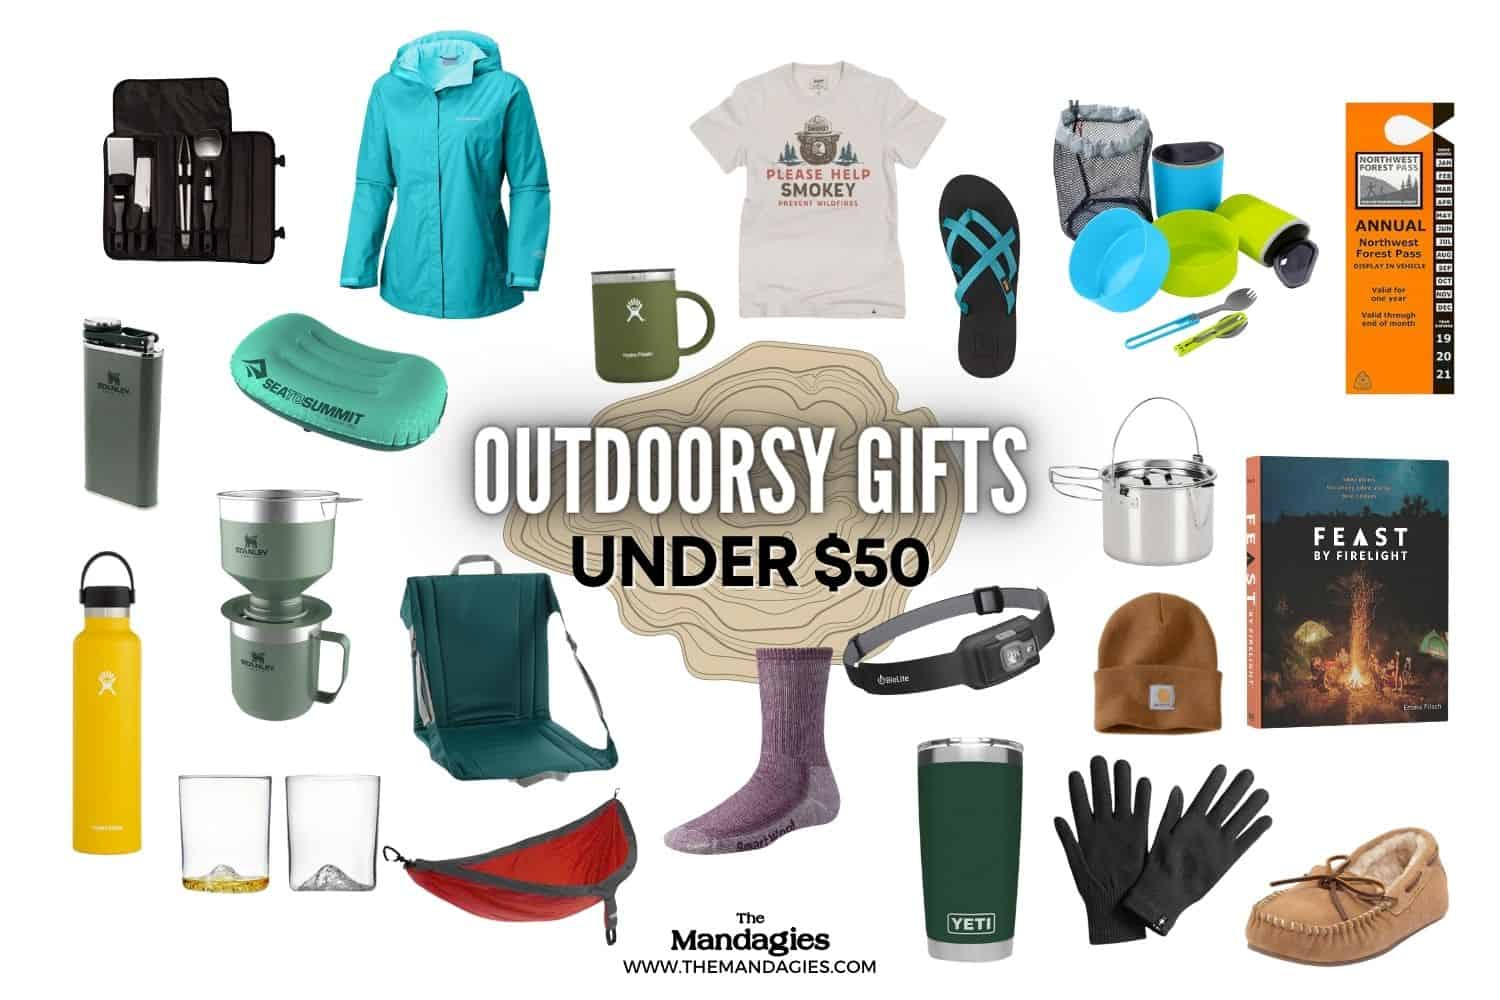 Outdoor Gifts Under $50